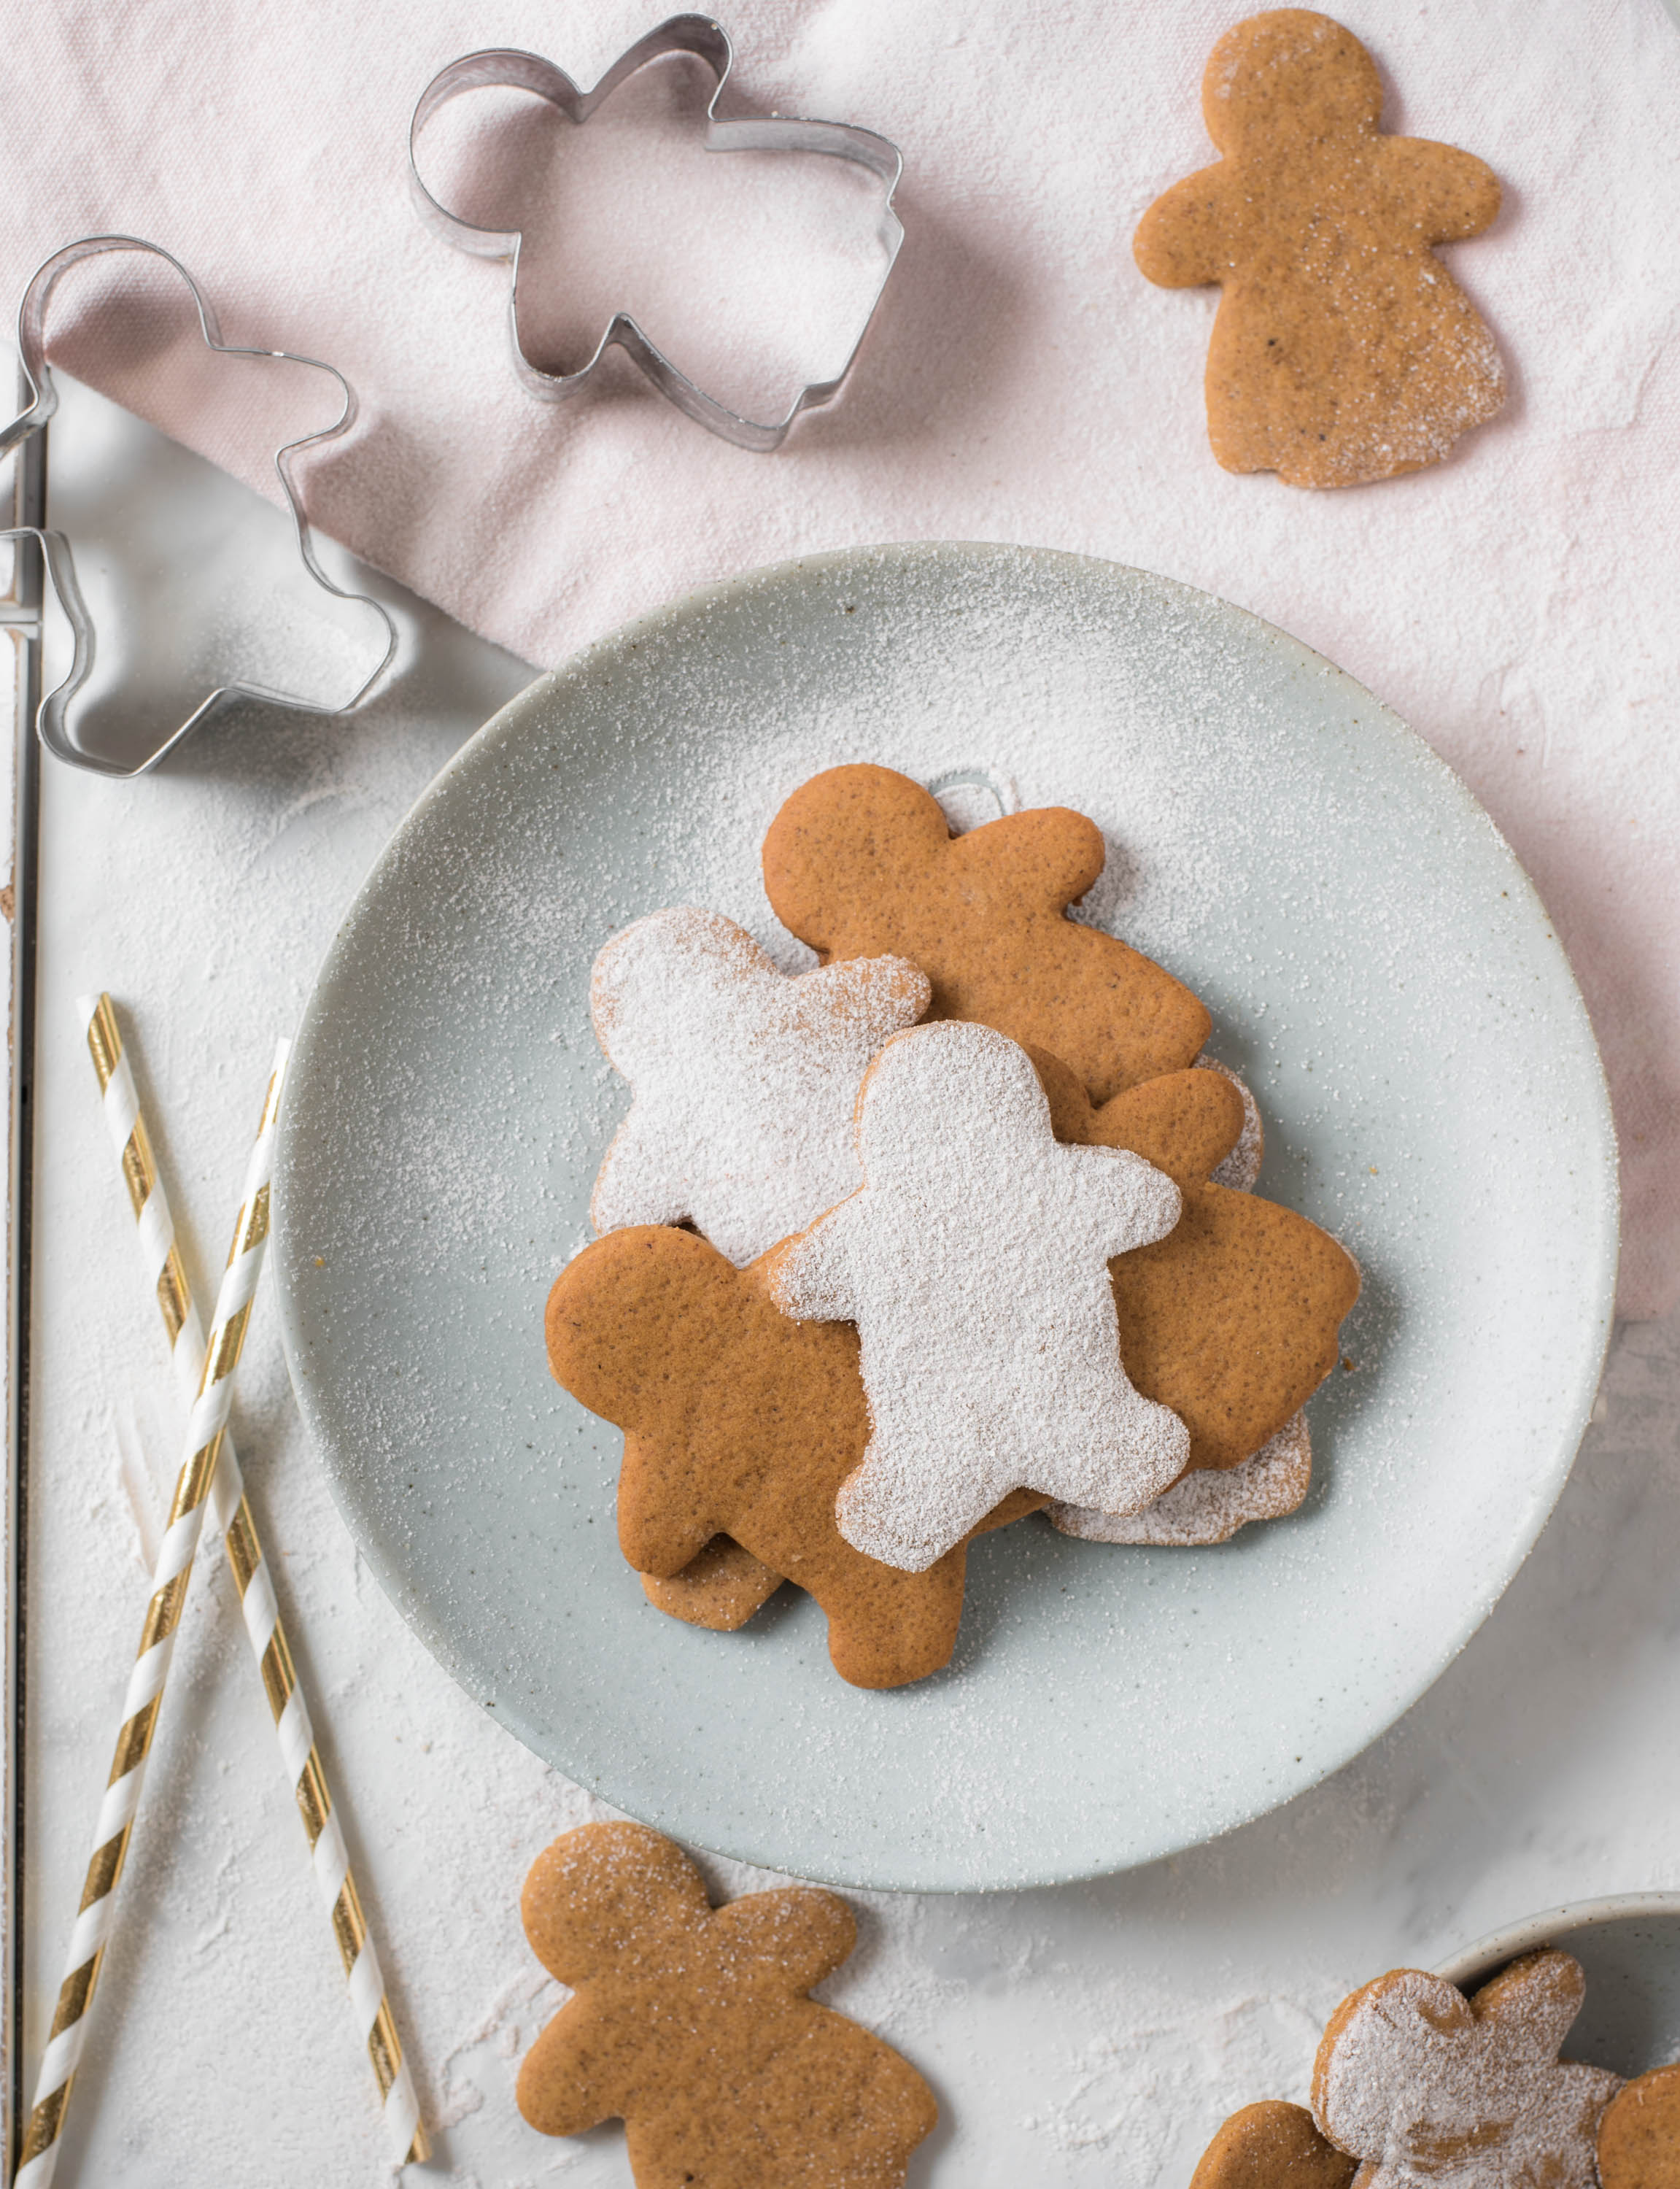 stacks of perfect gingerbread cookies